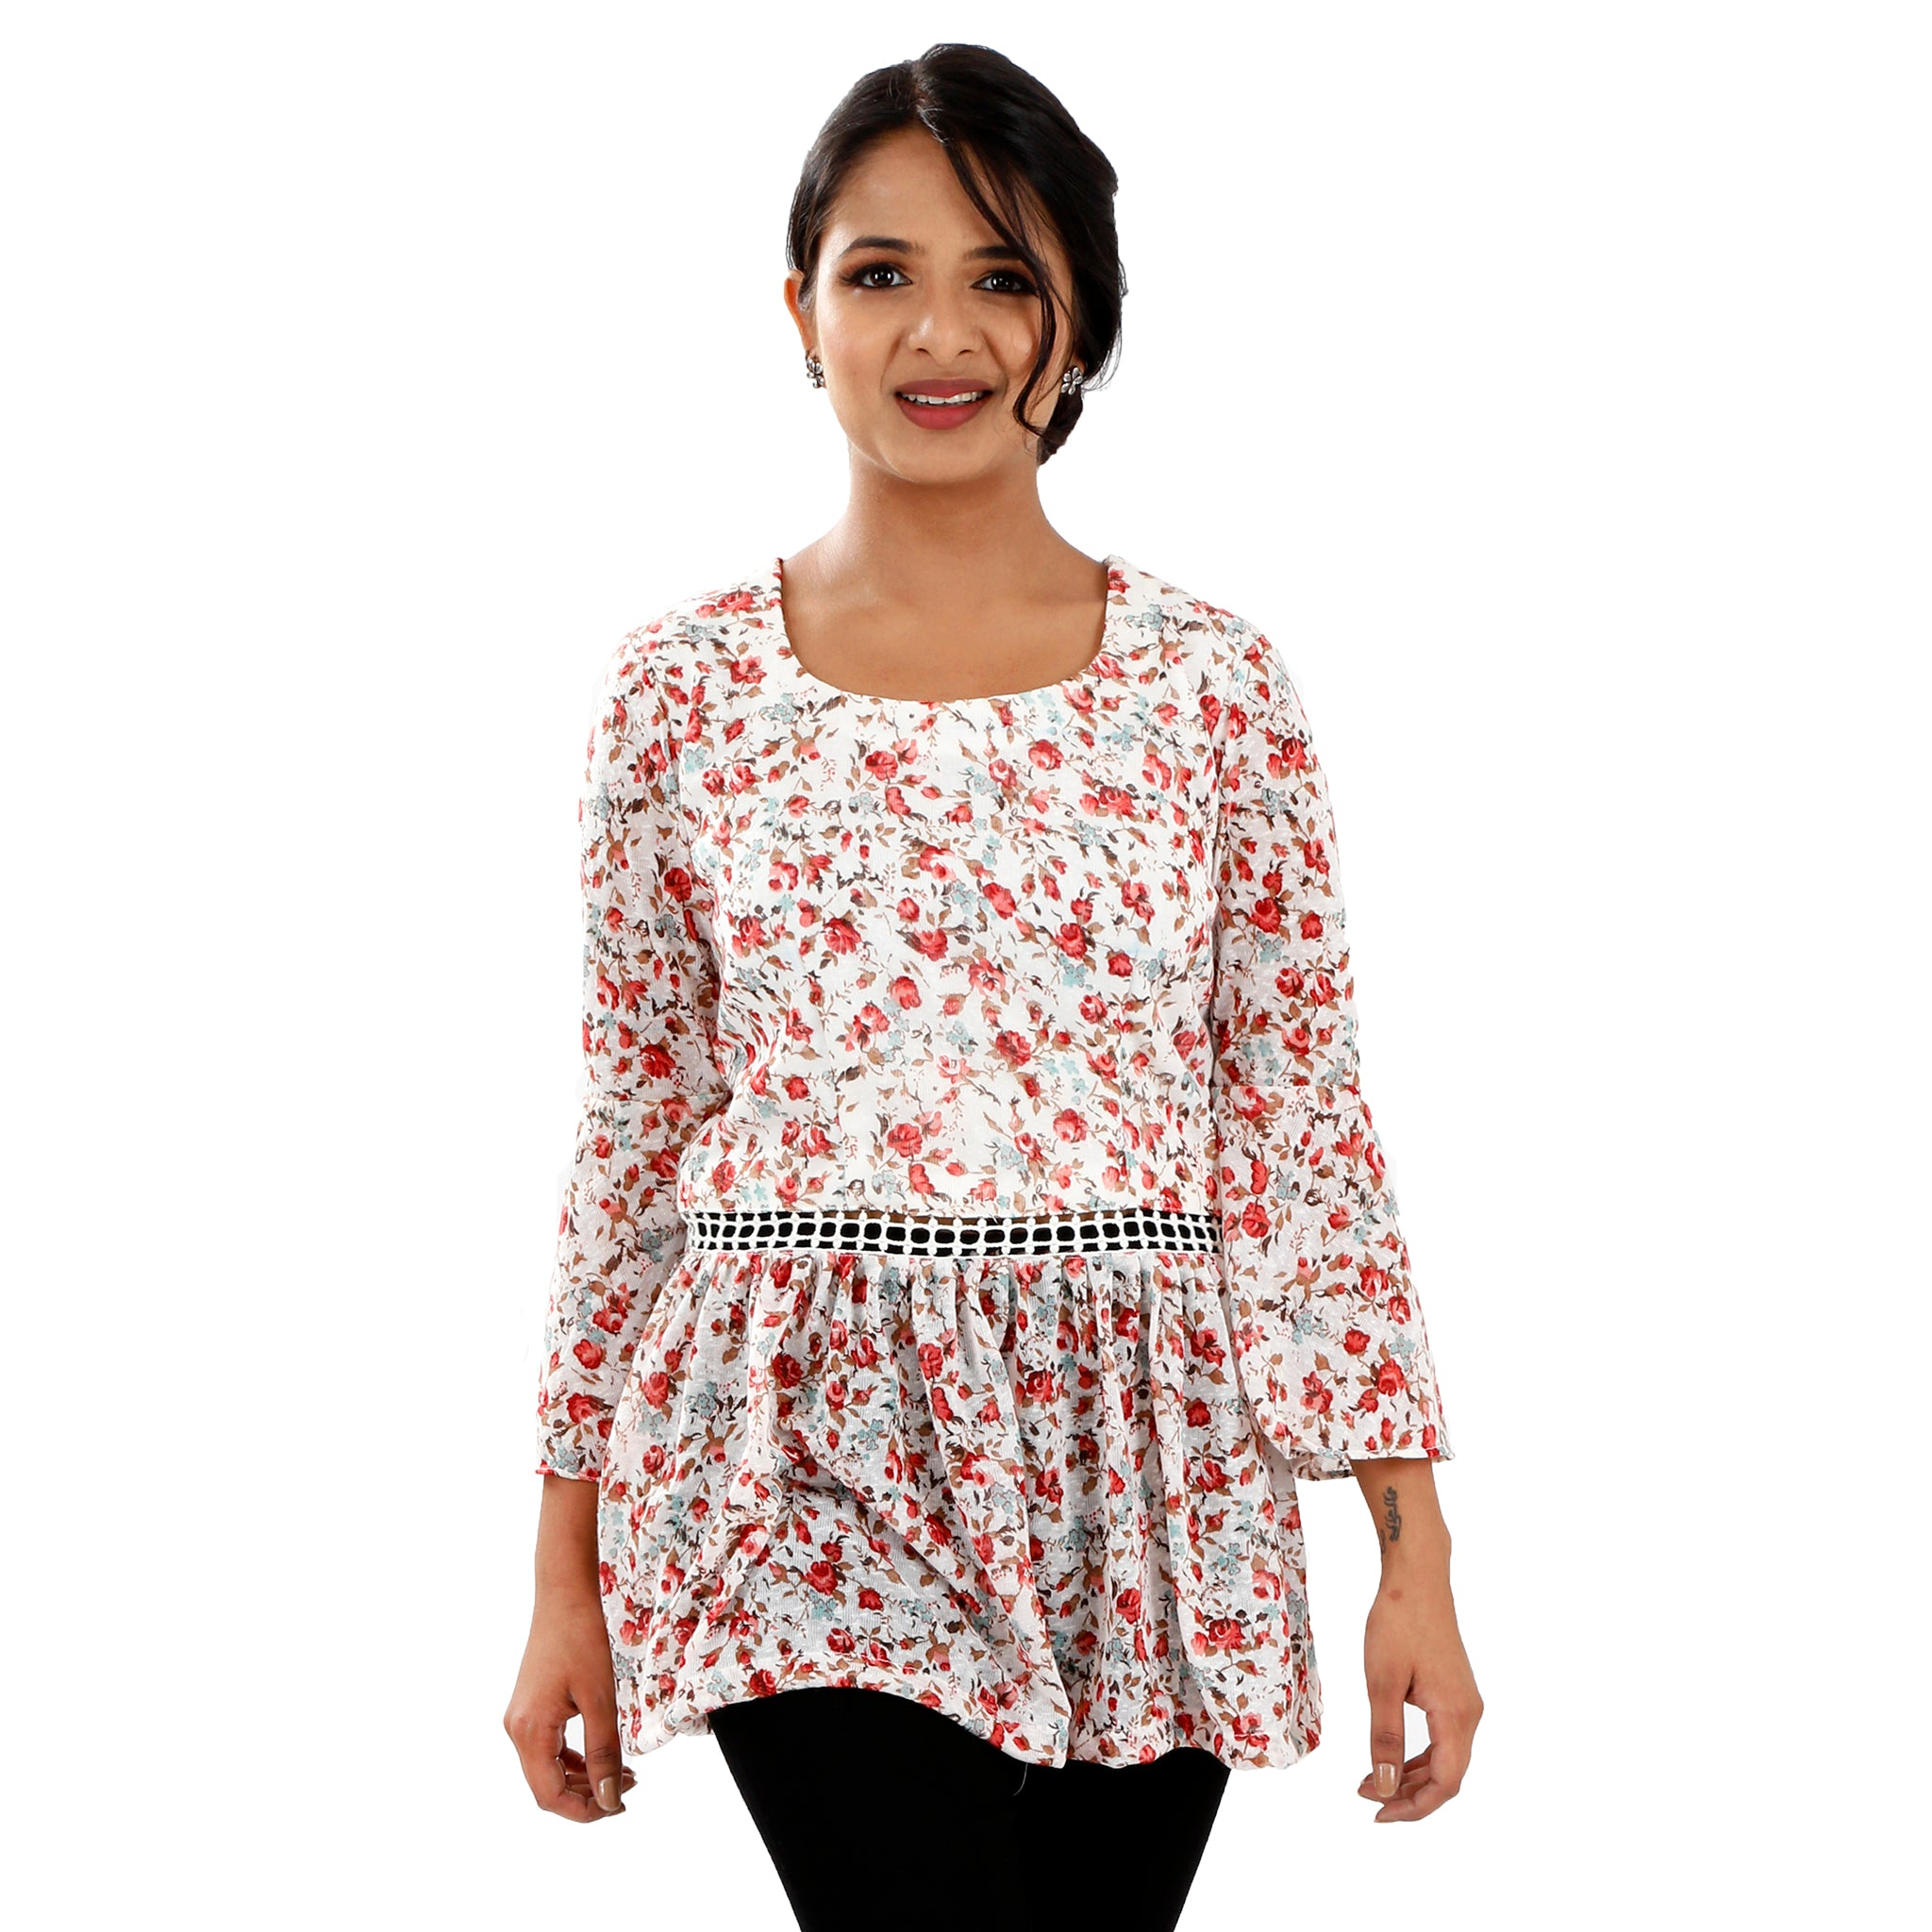 casual-peplum-top-in-floral-print-for-women